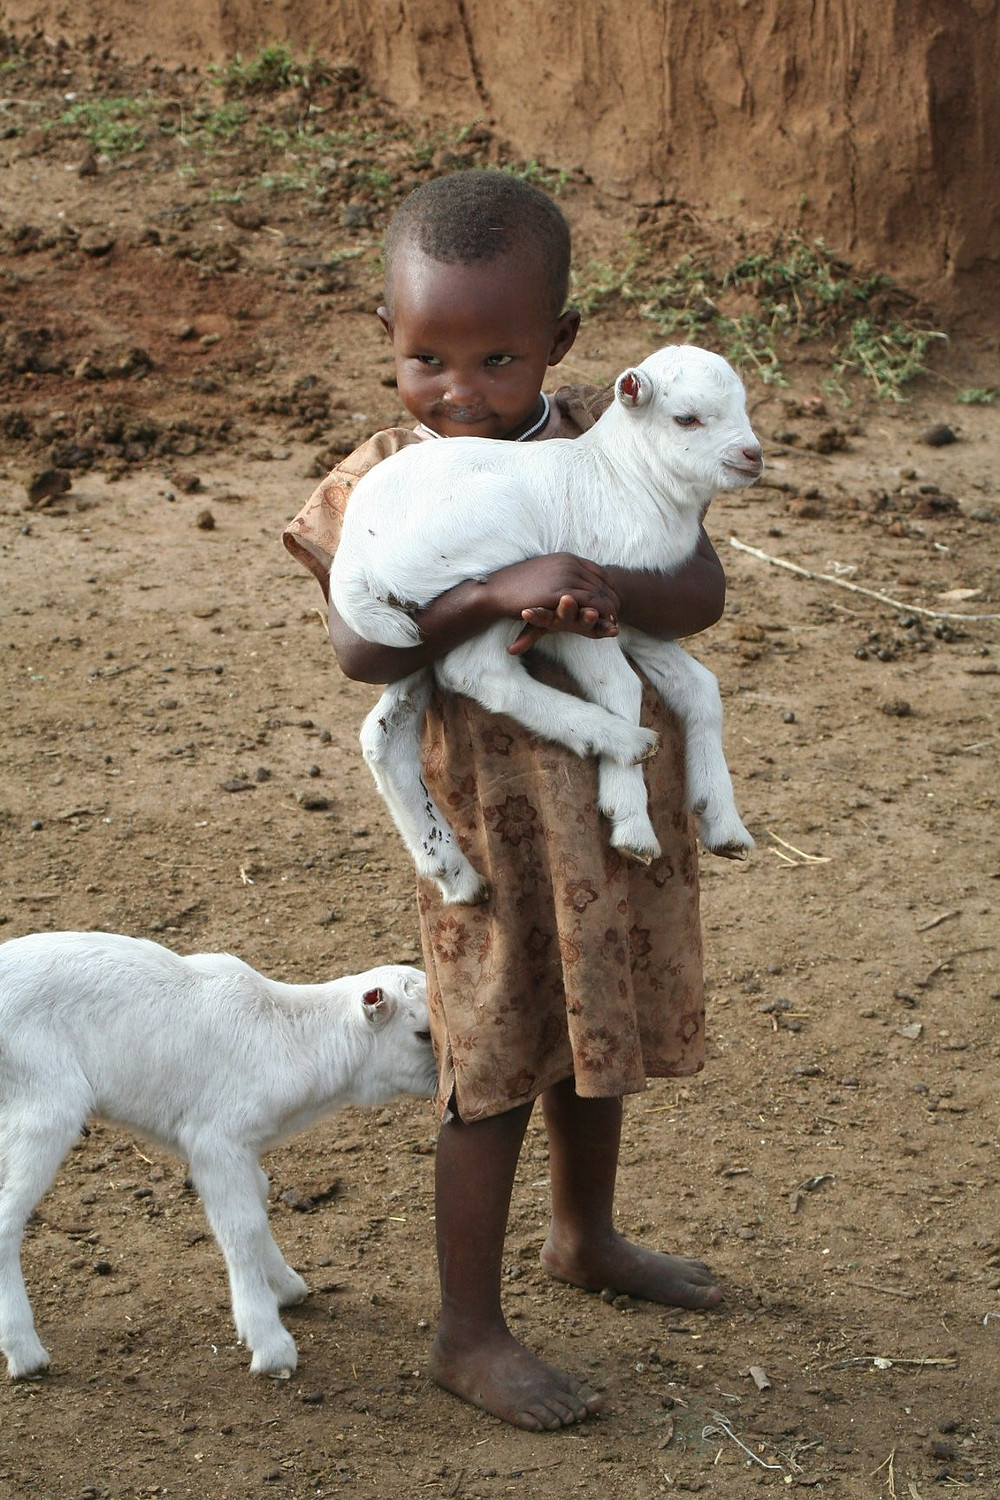 child in Kenya holding a lamb, image by yasmin00, on Pixabay